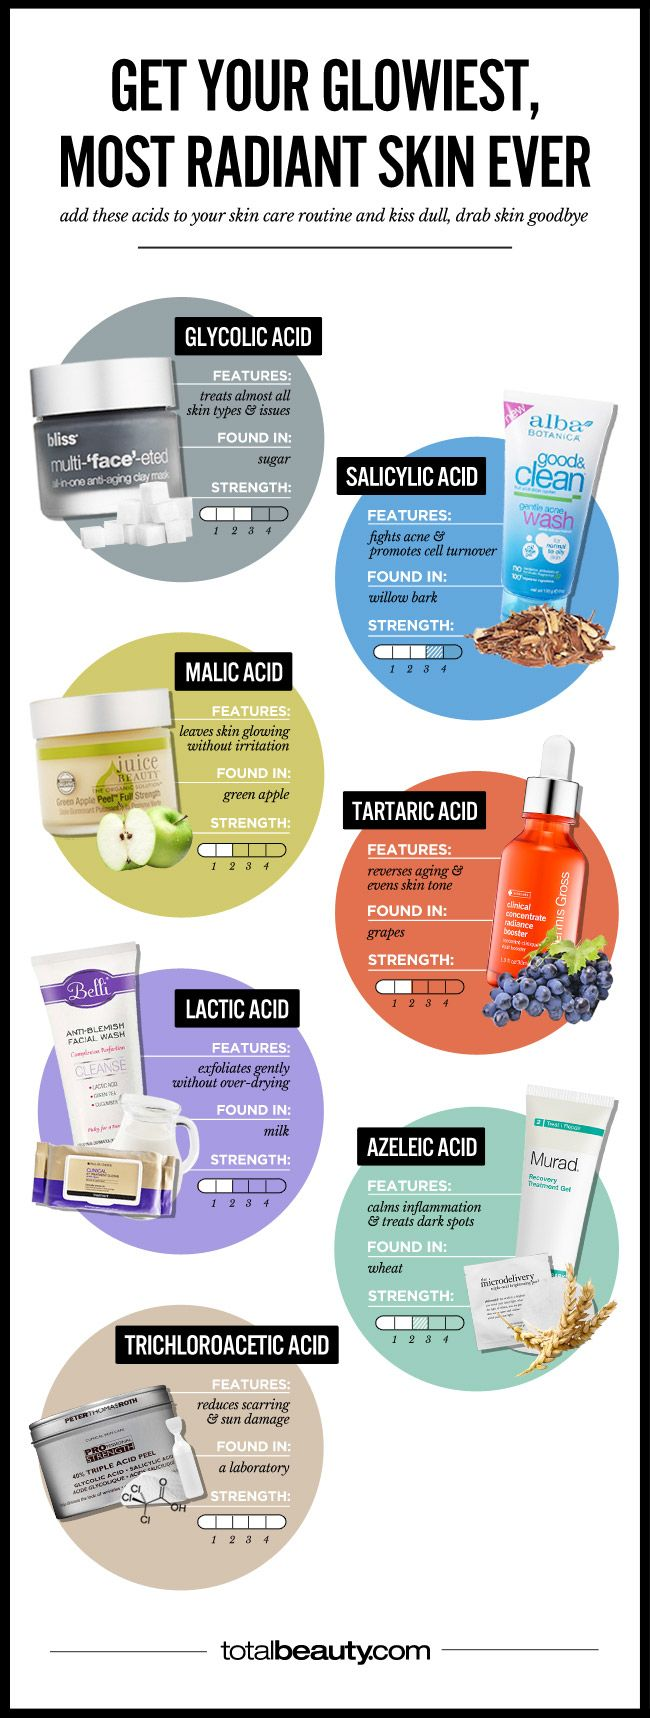 Different acids for glowing skin...worth a try?